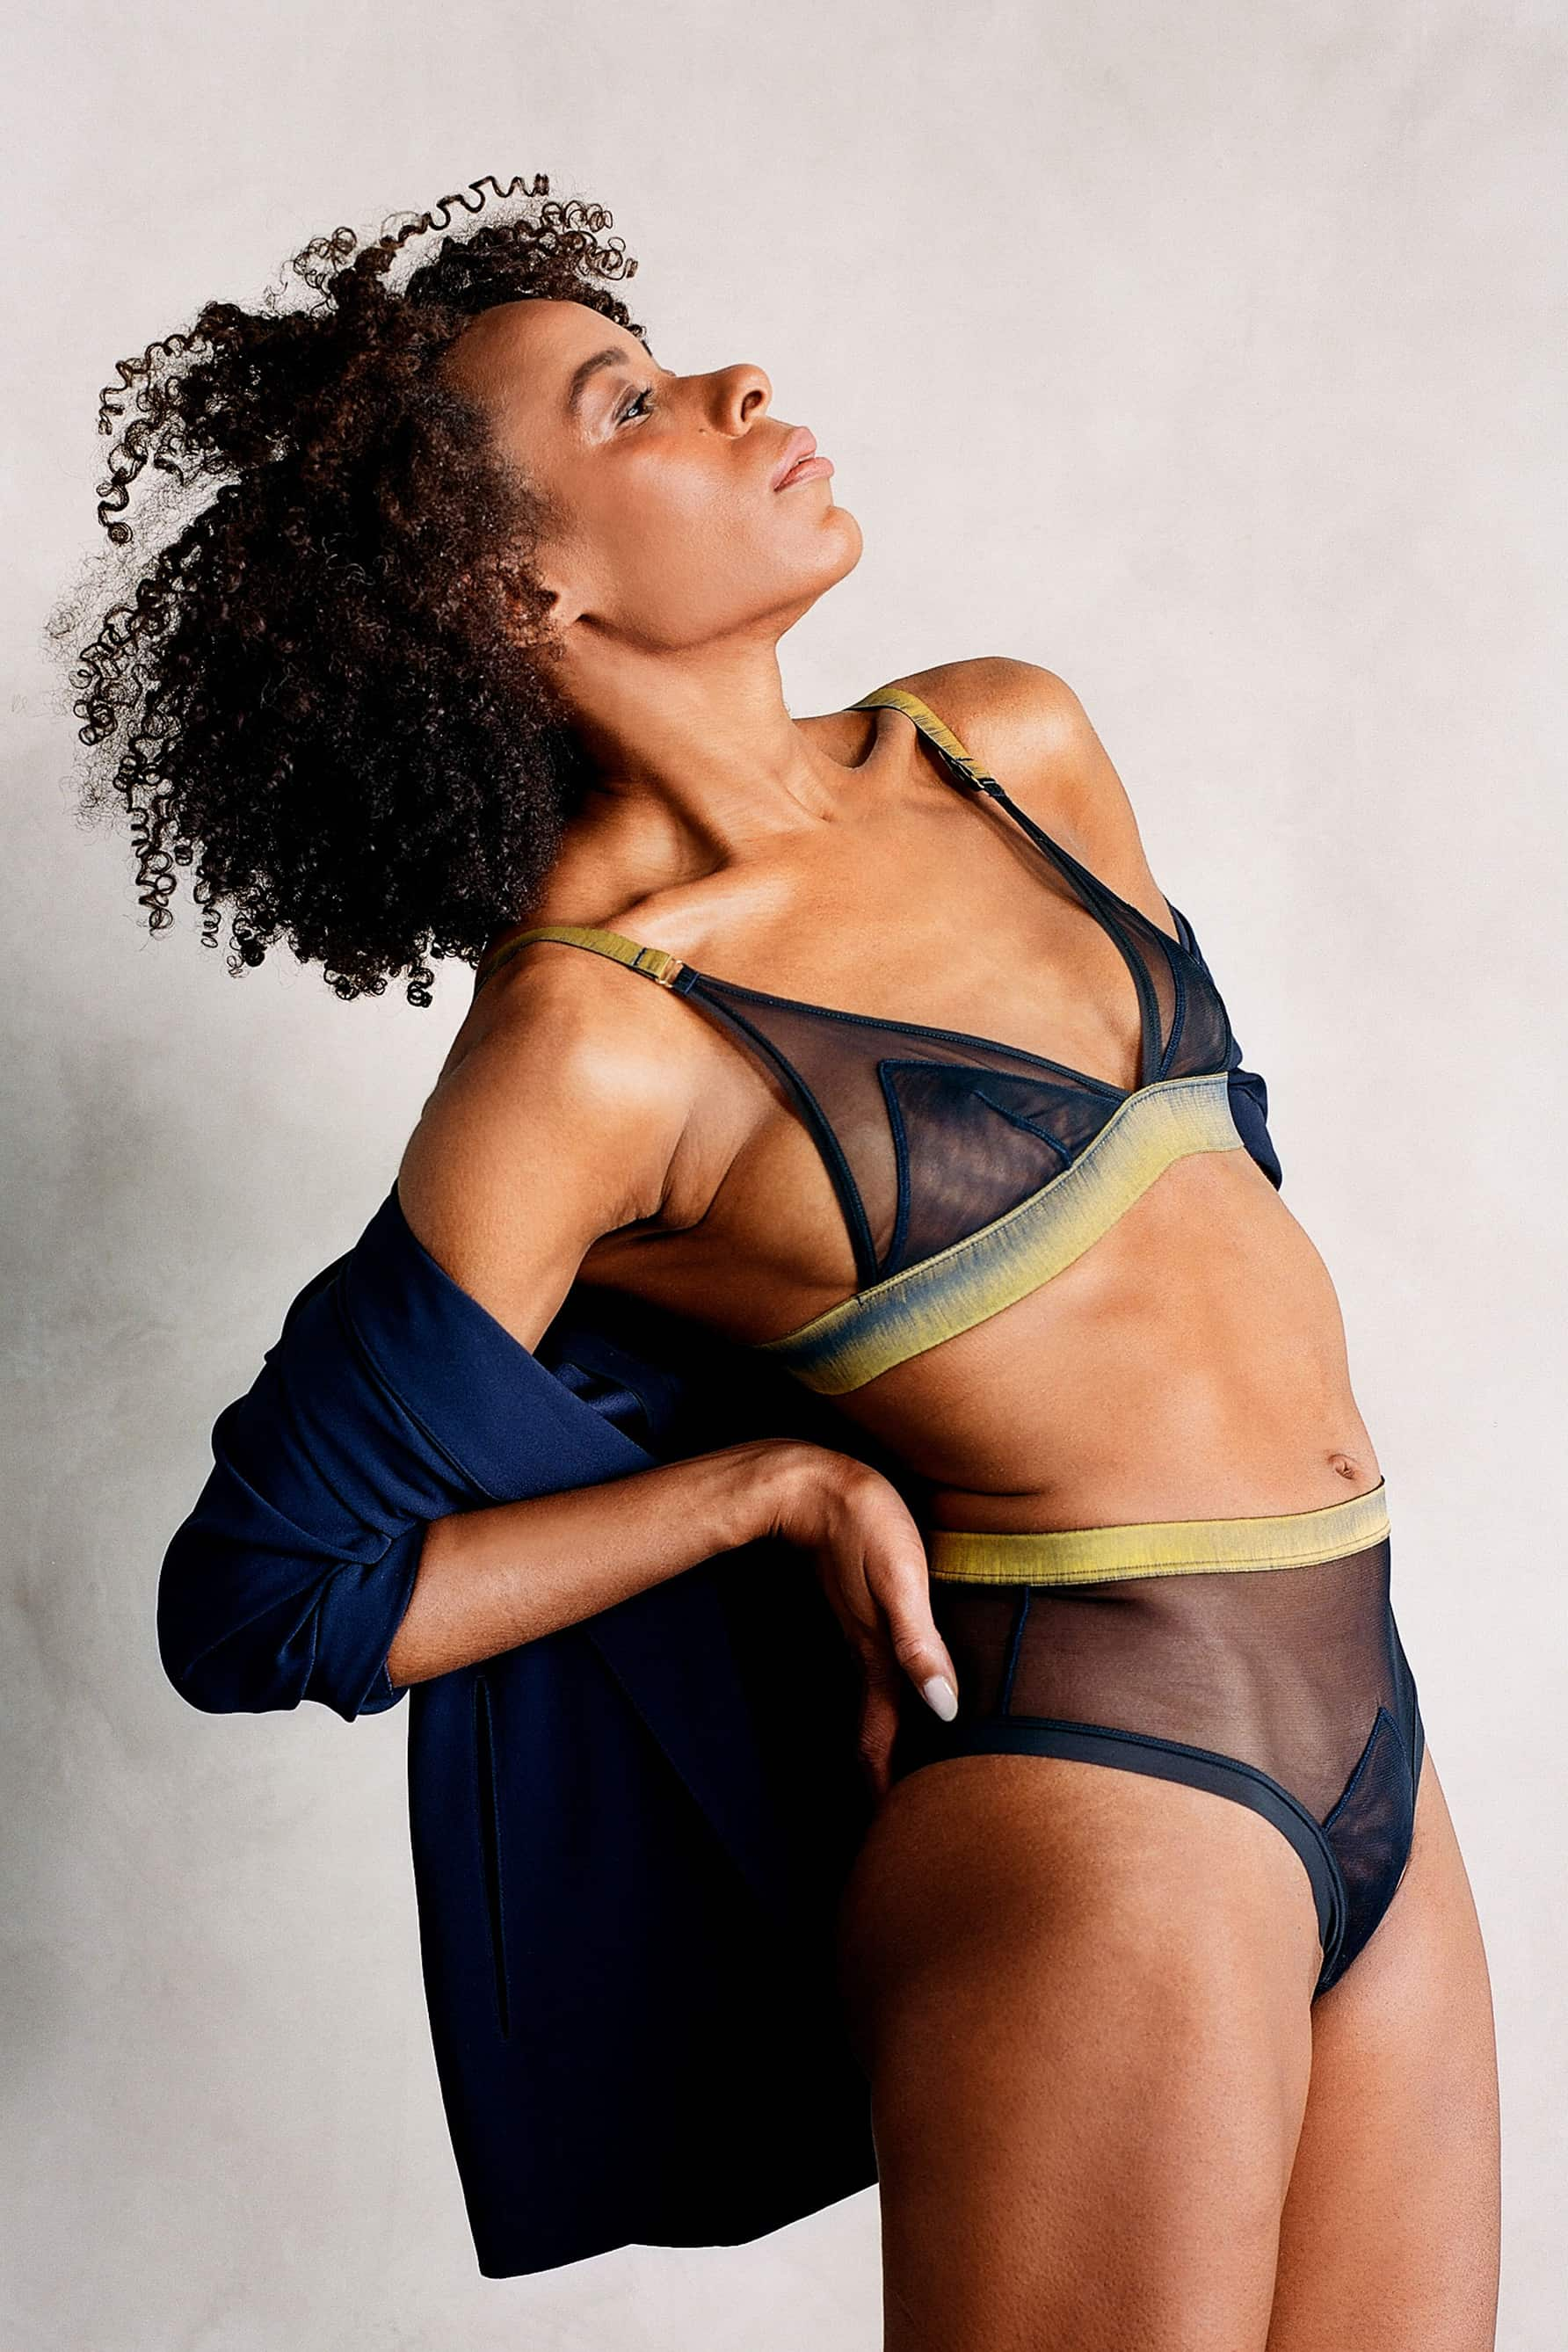 The Underargument Trust Your Gut triangle bra in midnight blue sheer tulle with mustard yellow trim, shown with matching high waist brief, side view on model